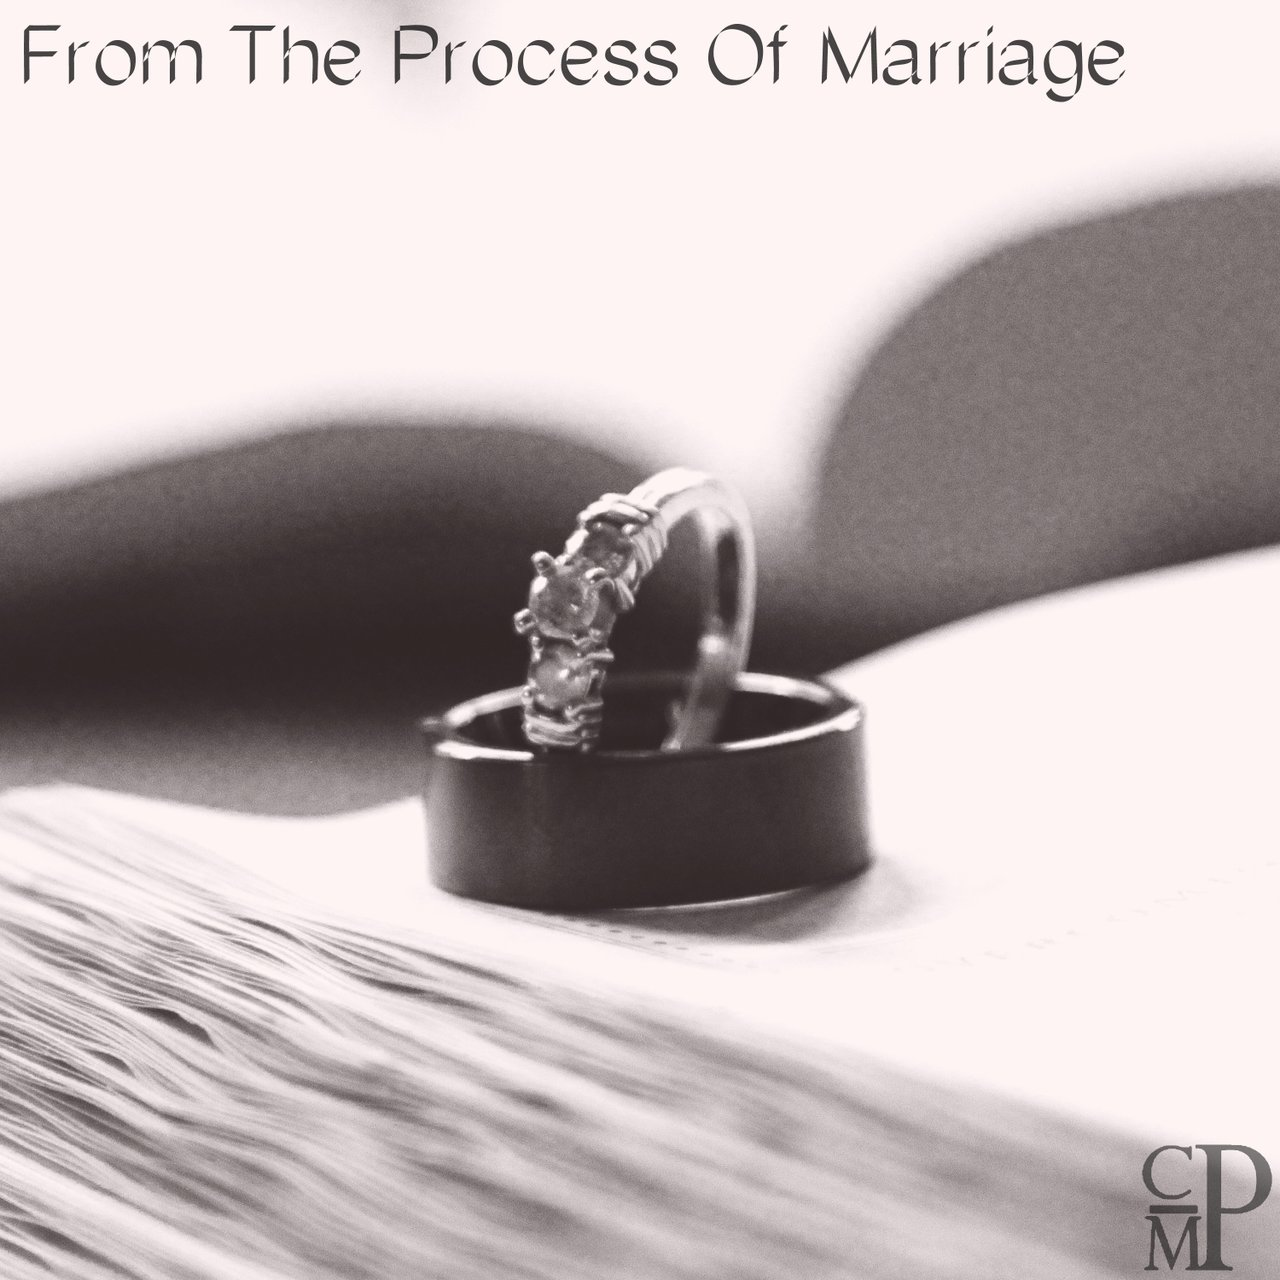 From the Process of Marriage